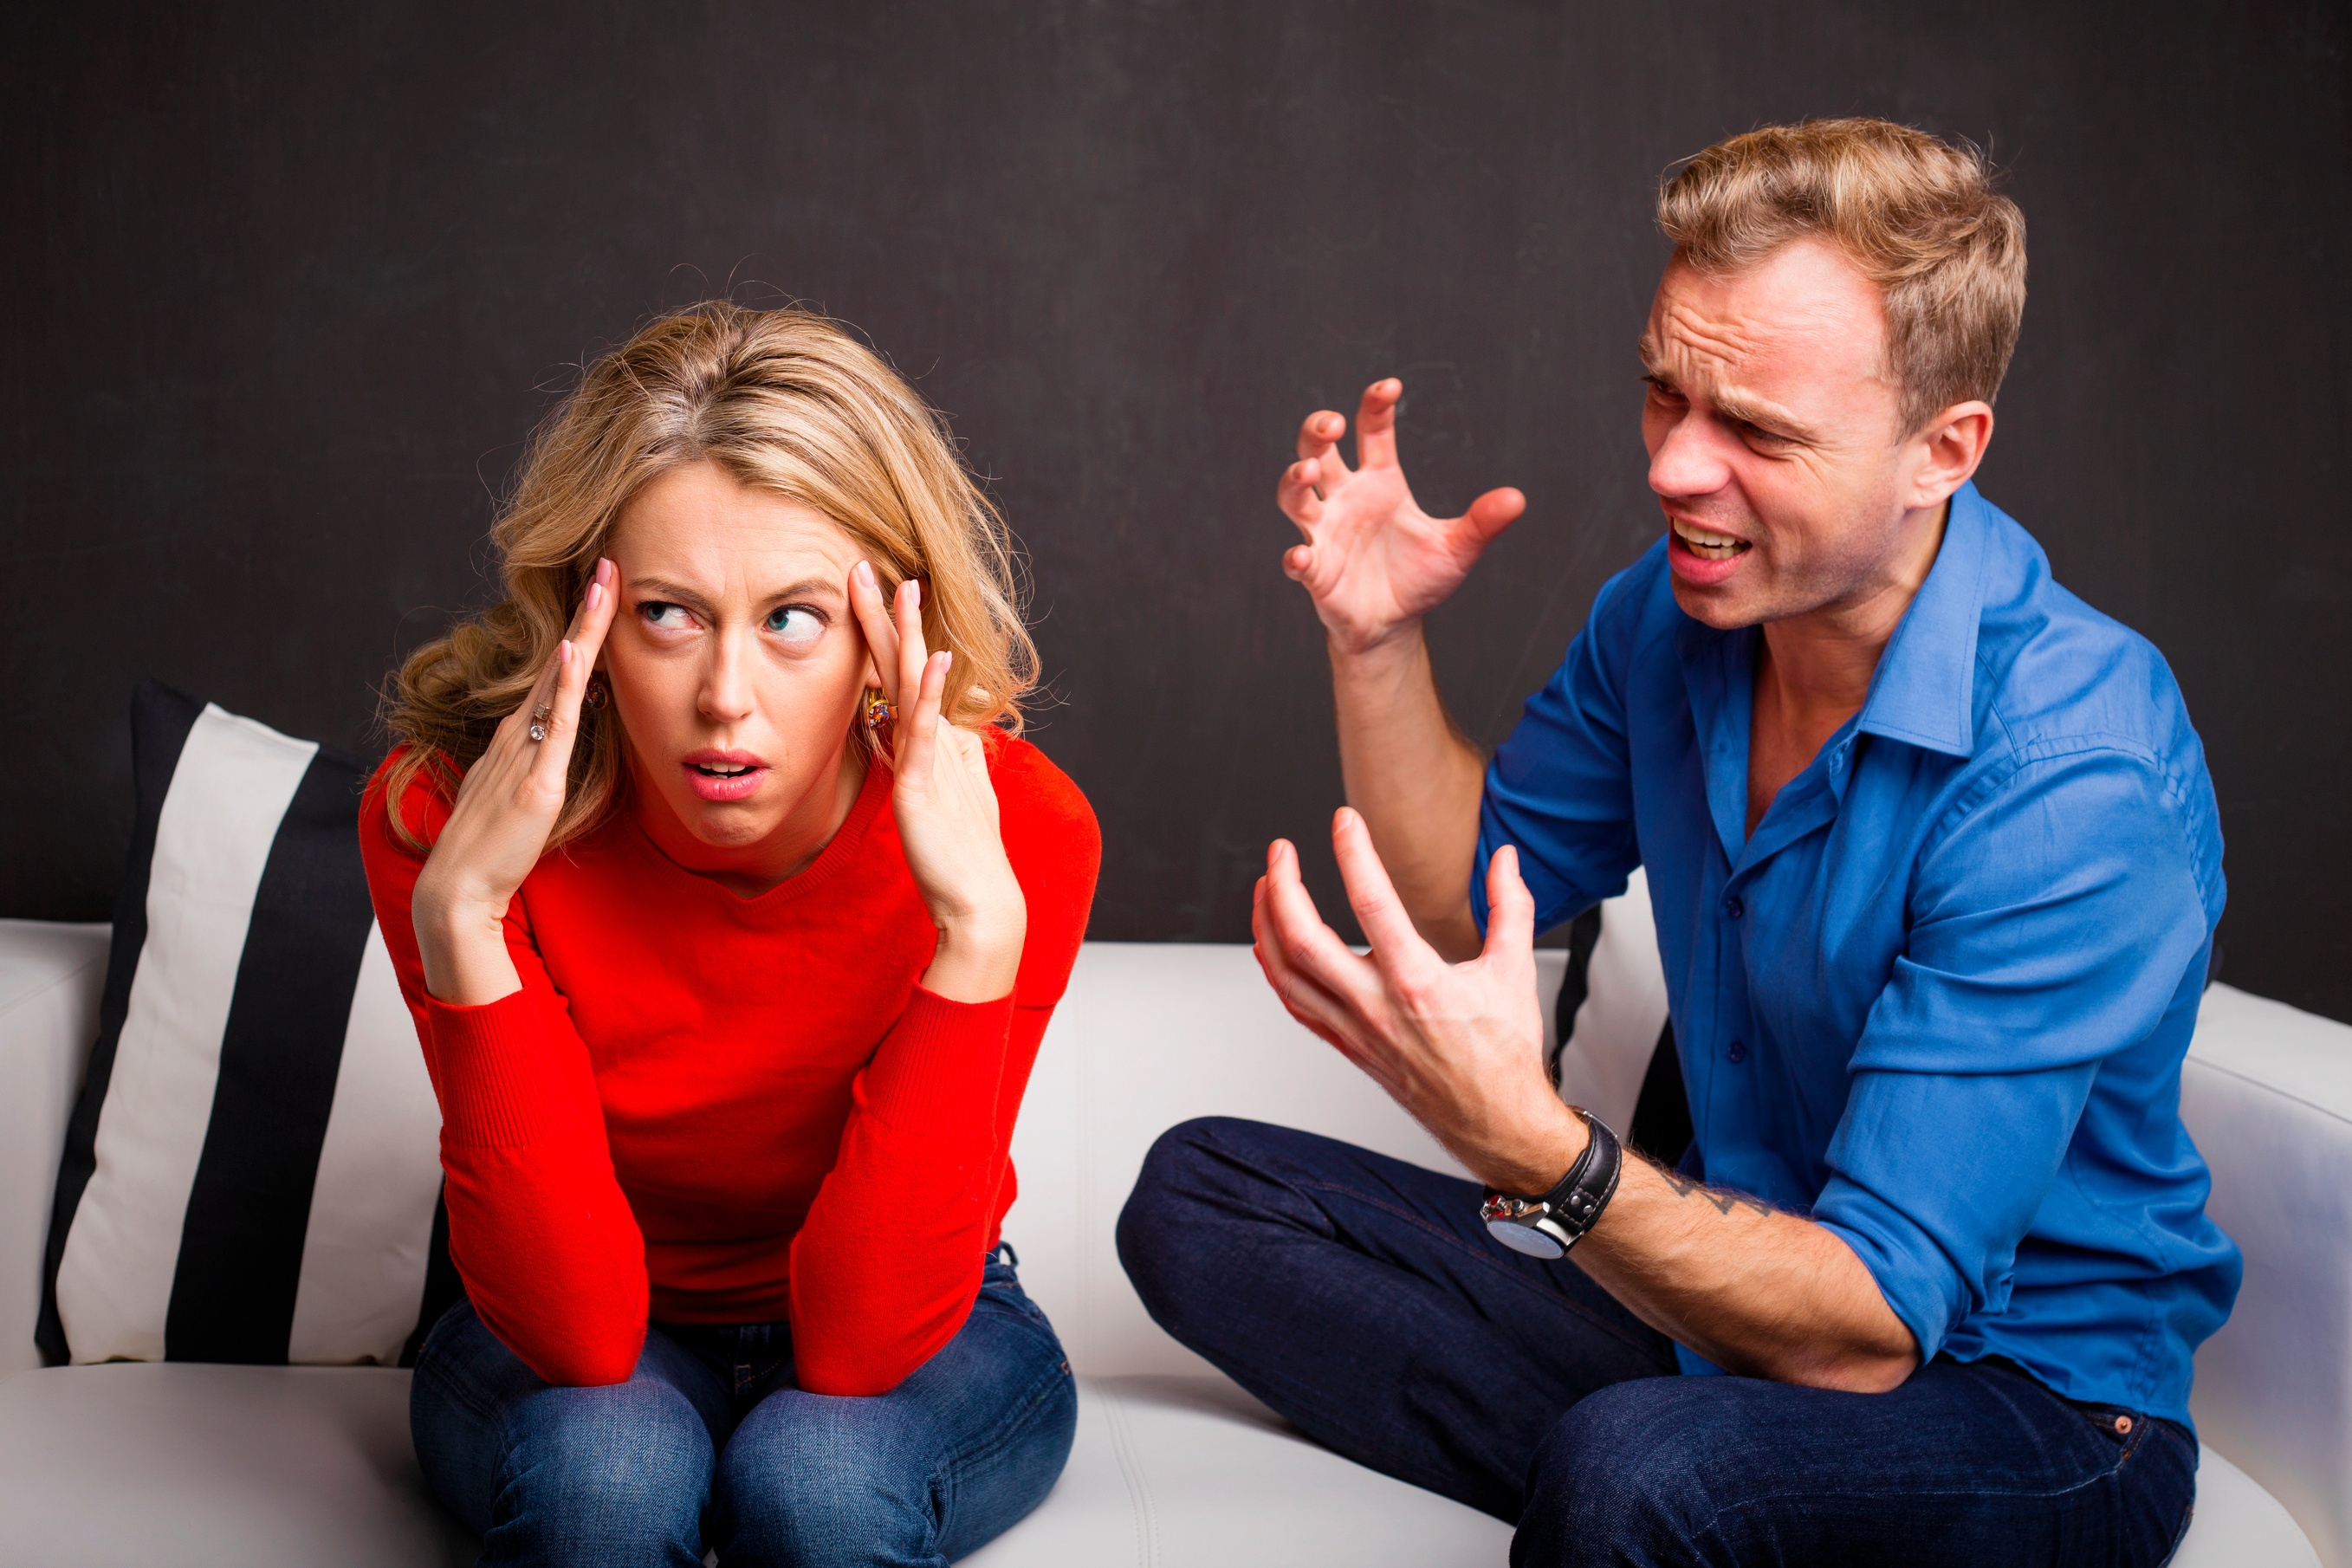 Husband angry and frustrated with his wife